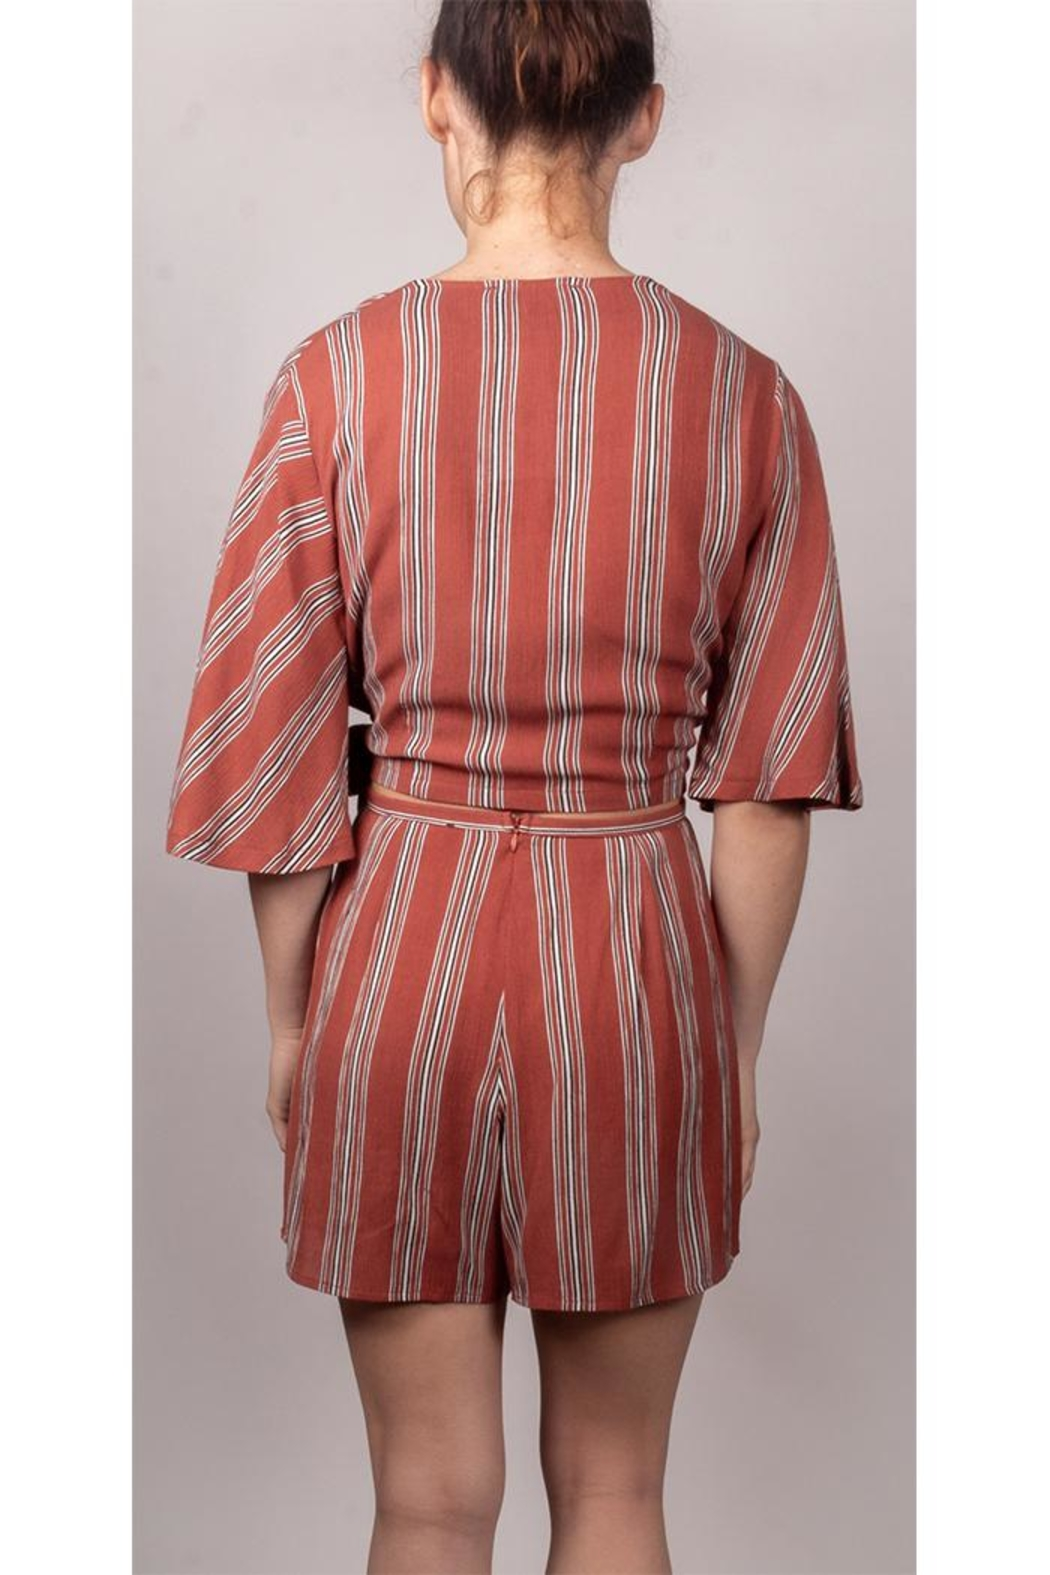 AAKAA It-Girl Striped Set - Back Cropped Image